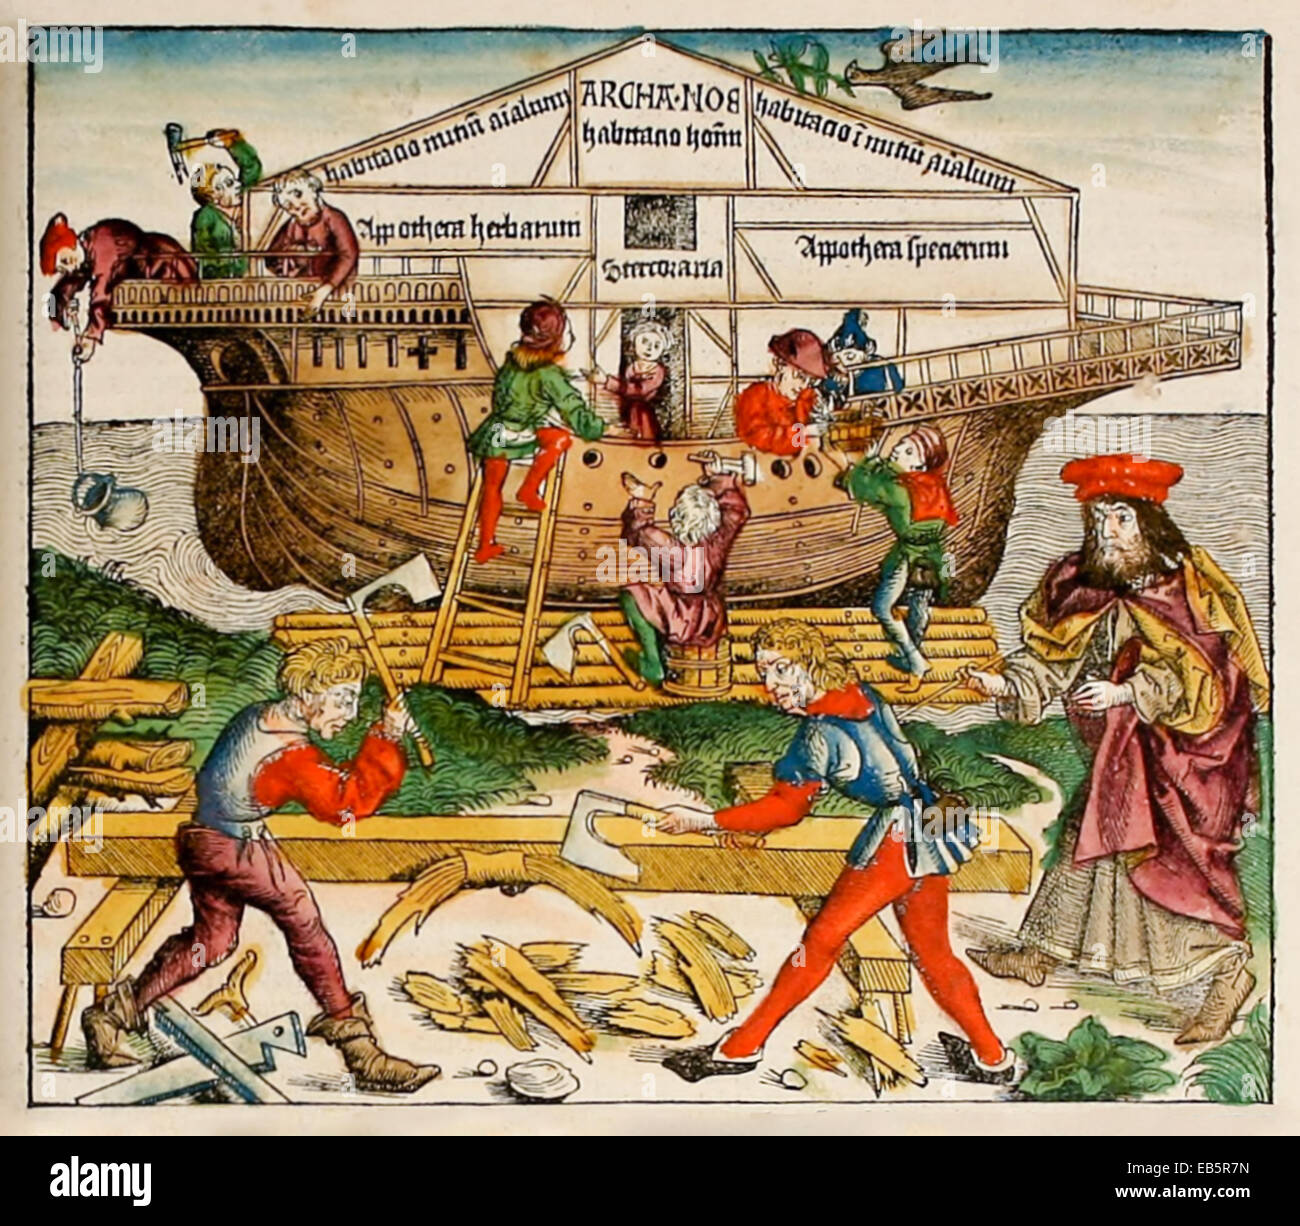 Noah's Ark from 'Nuremberg Chronicle' or 'Liber Chronicarum' by Hartmann Schedel (1440-1514). See description for Stock Photo